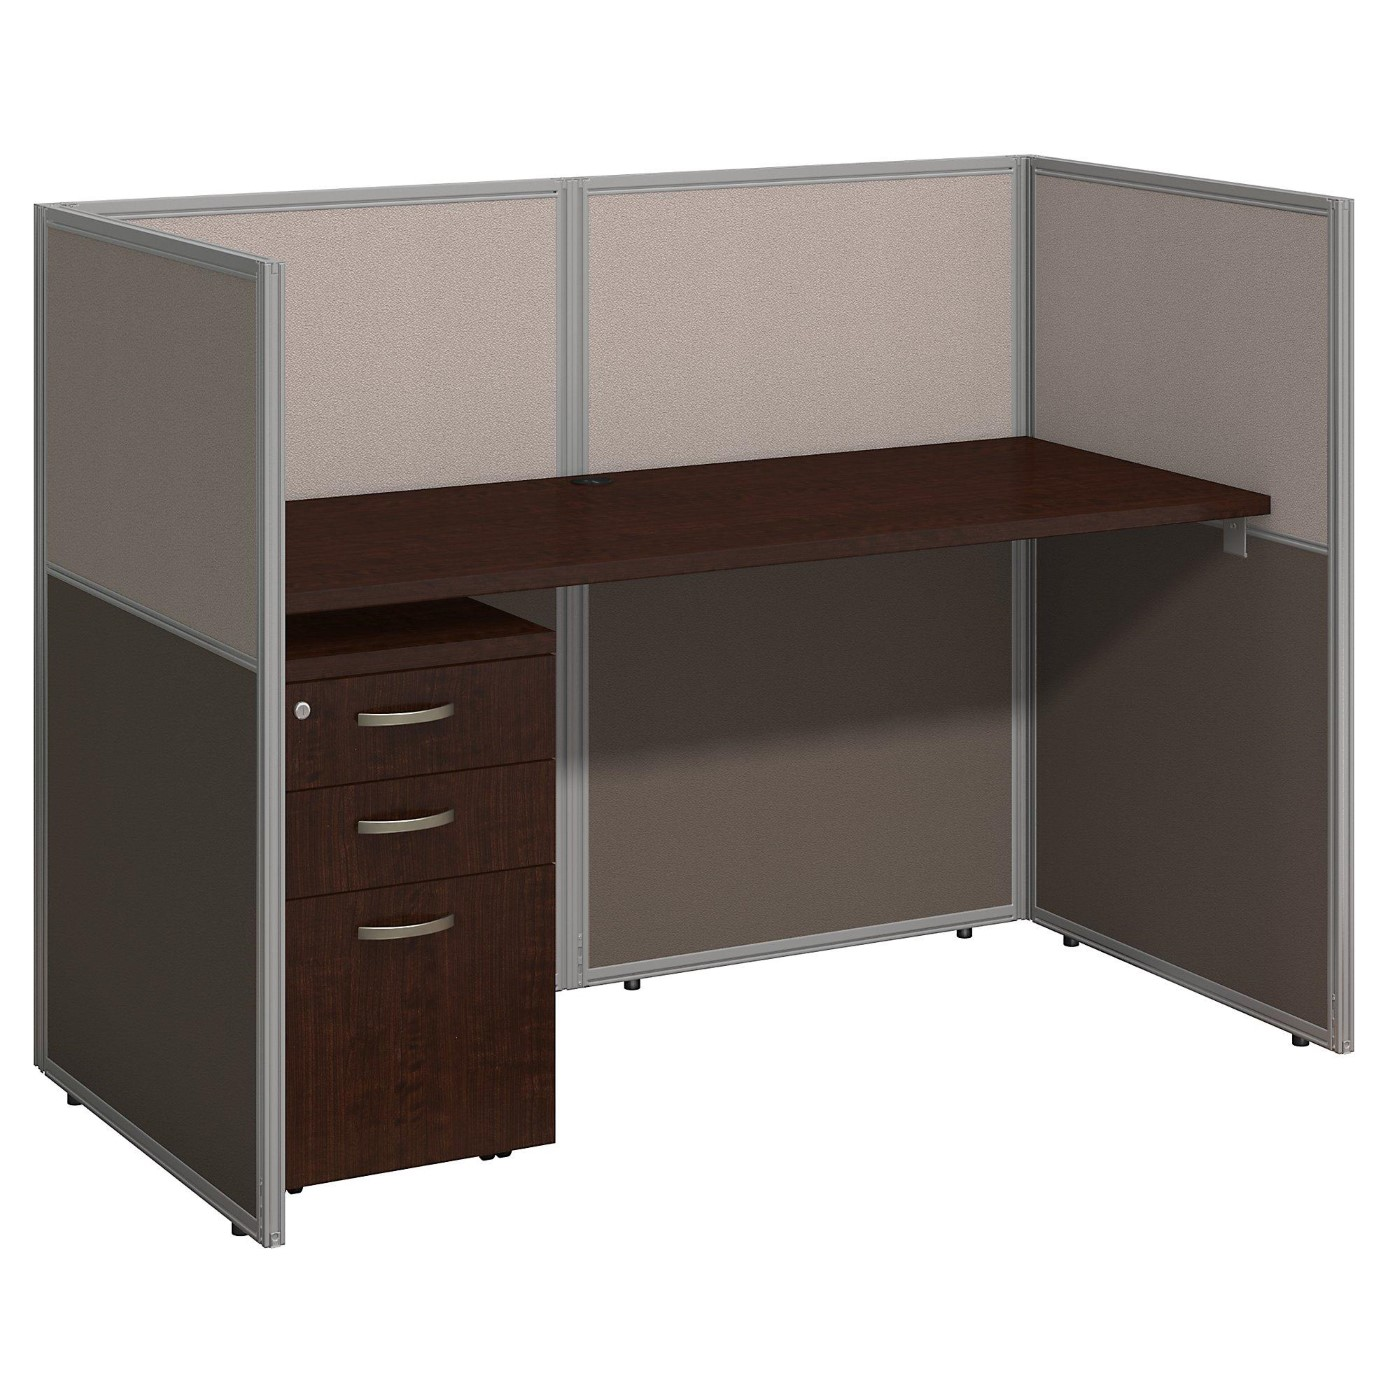 <font color=#c60><b>BUSH BUSINESS FURNITURE EASY OFFICE 60W STRAIGHT DESK CLOSED OFFICE WITH MOBILE FILE CABINET. FREE SHIPPING</font></b>